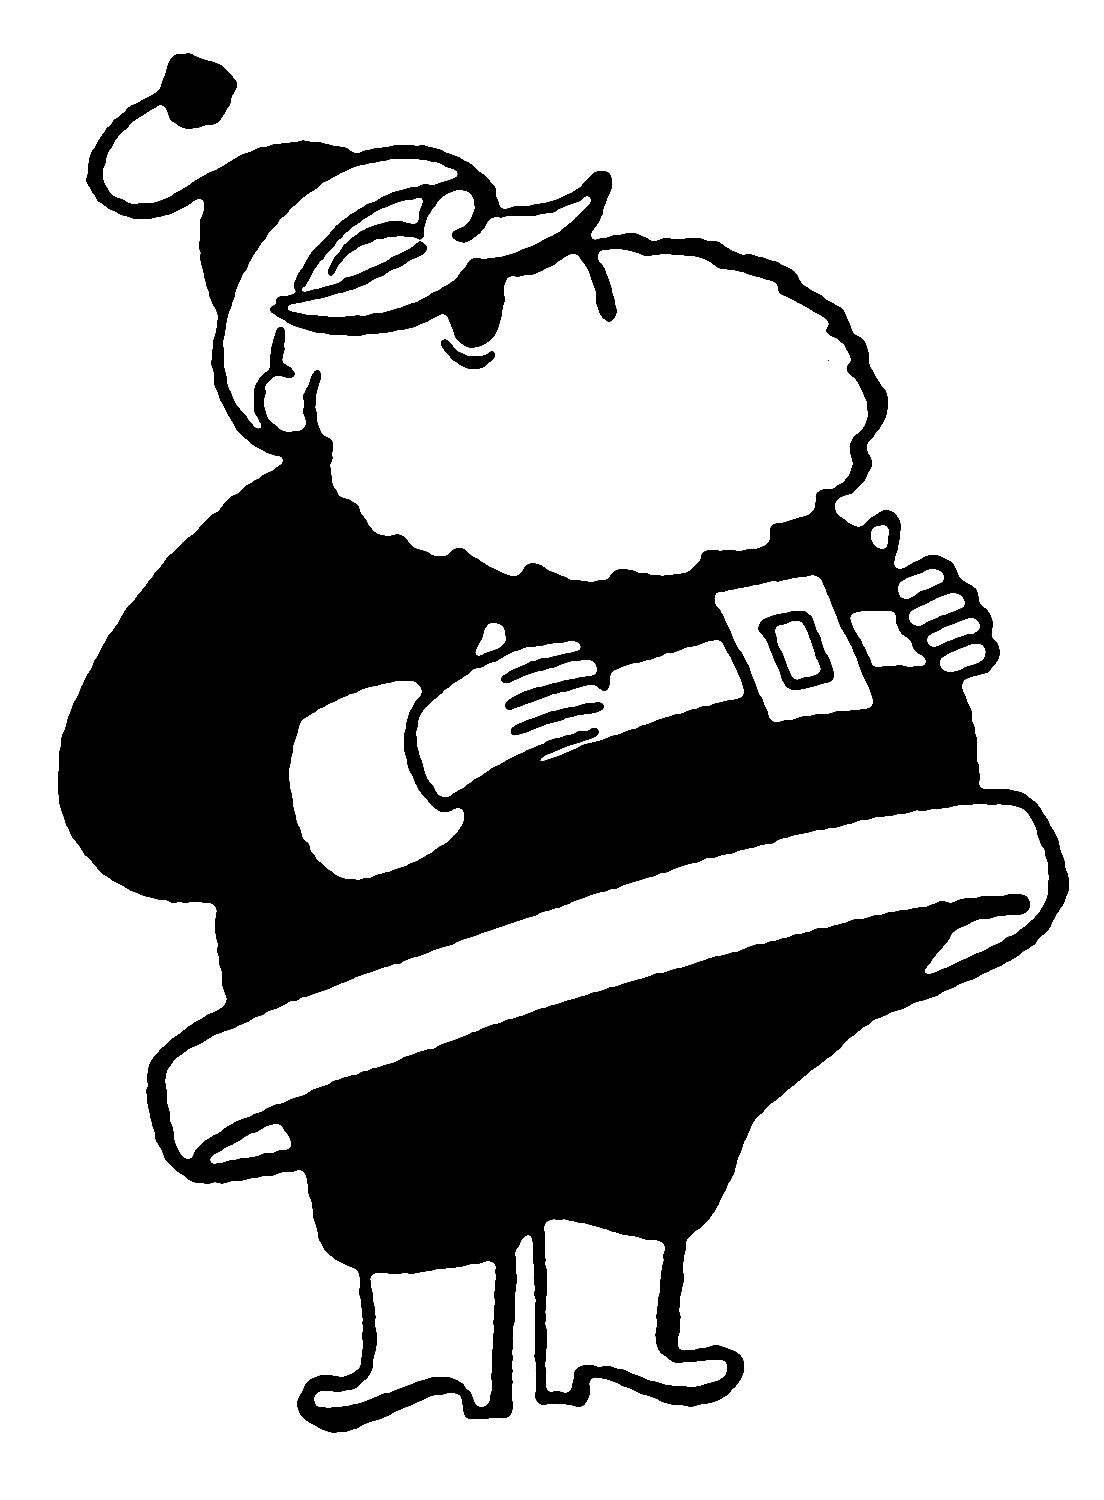 retro christmas clip art funny santas pinterest retro rh pinterest com funny christmas clipart black and white funny christian clipart